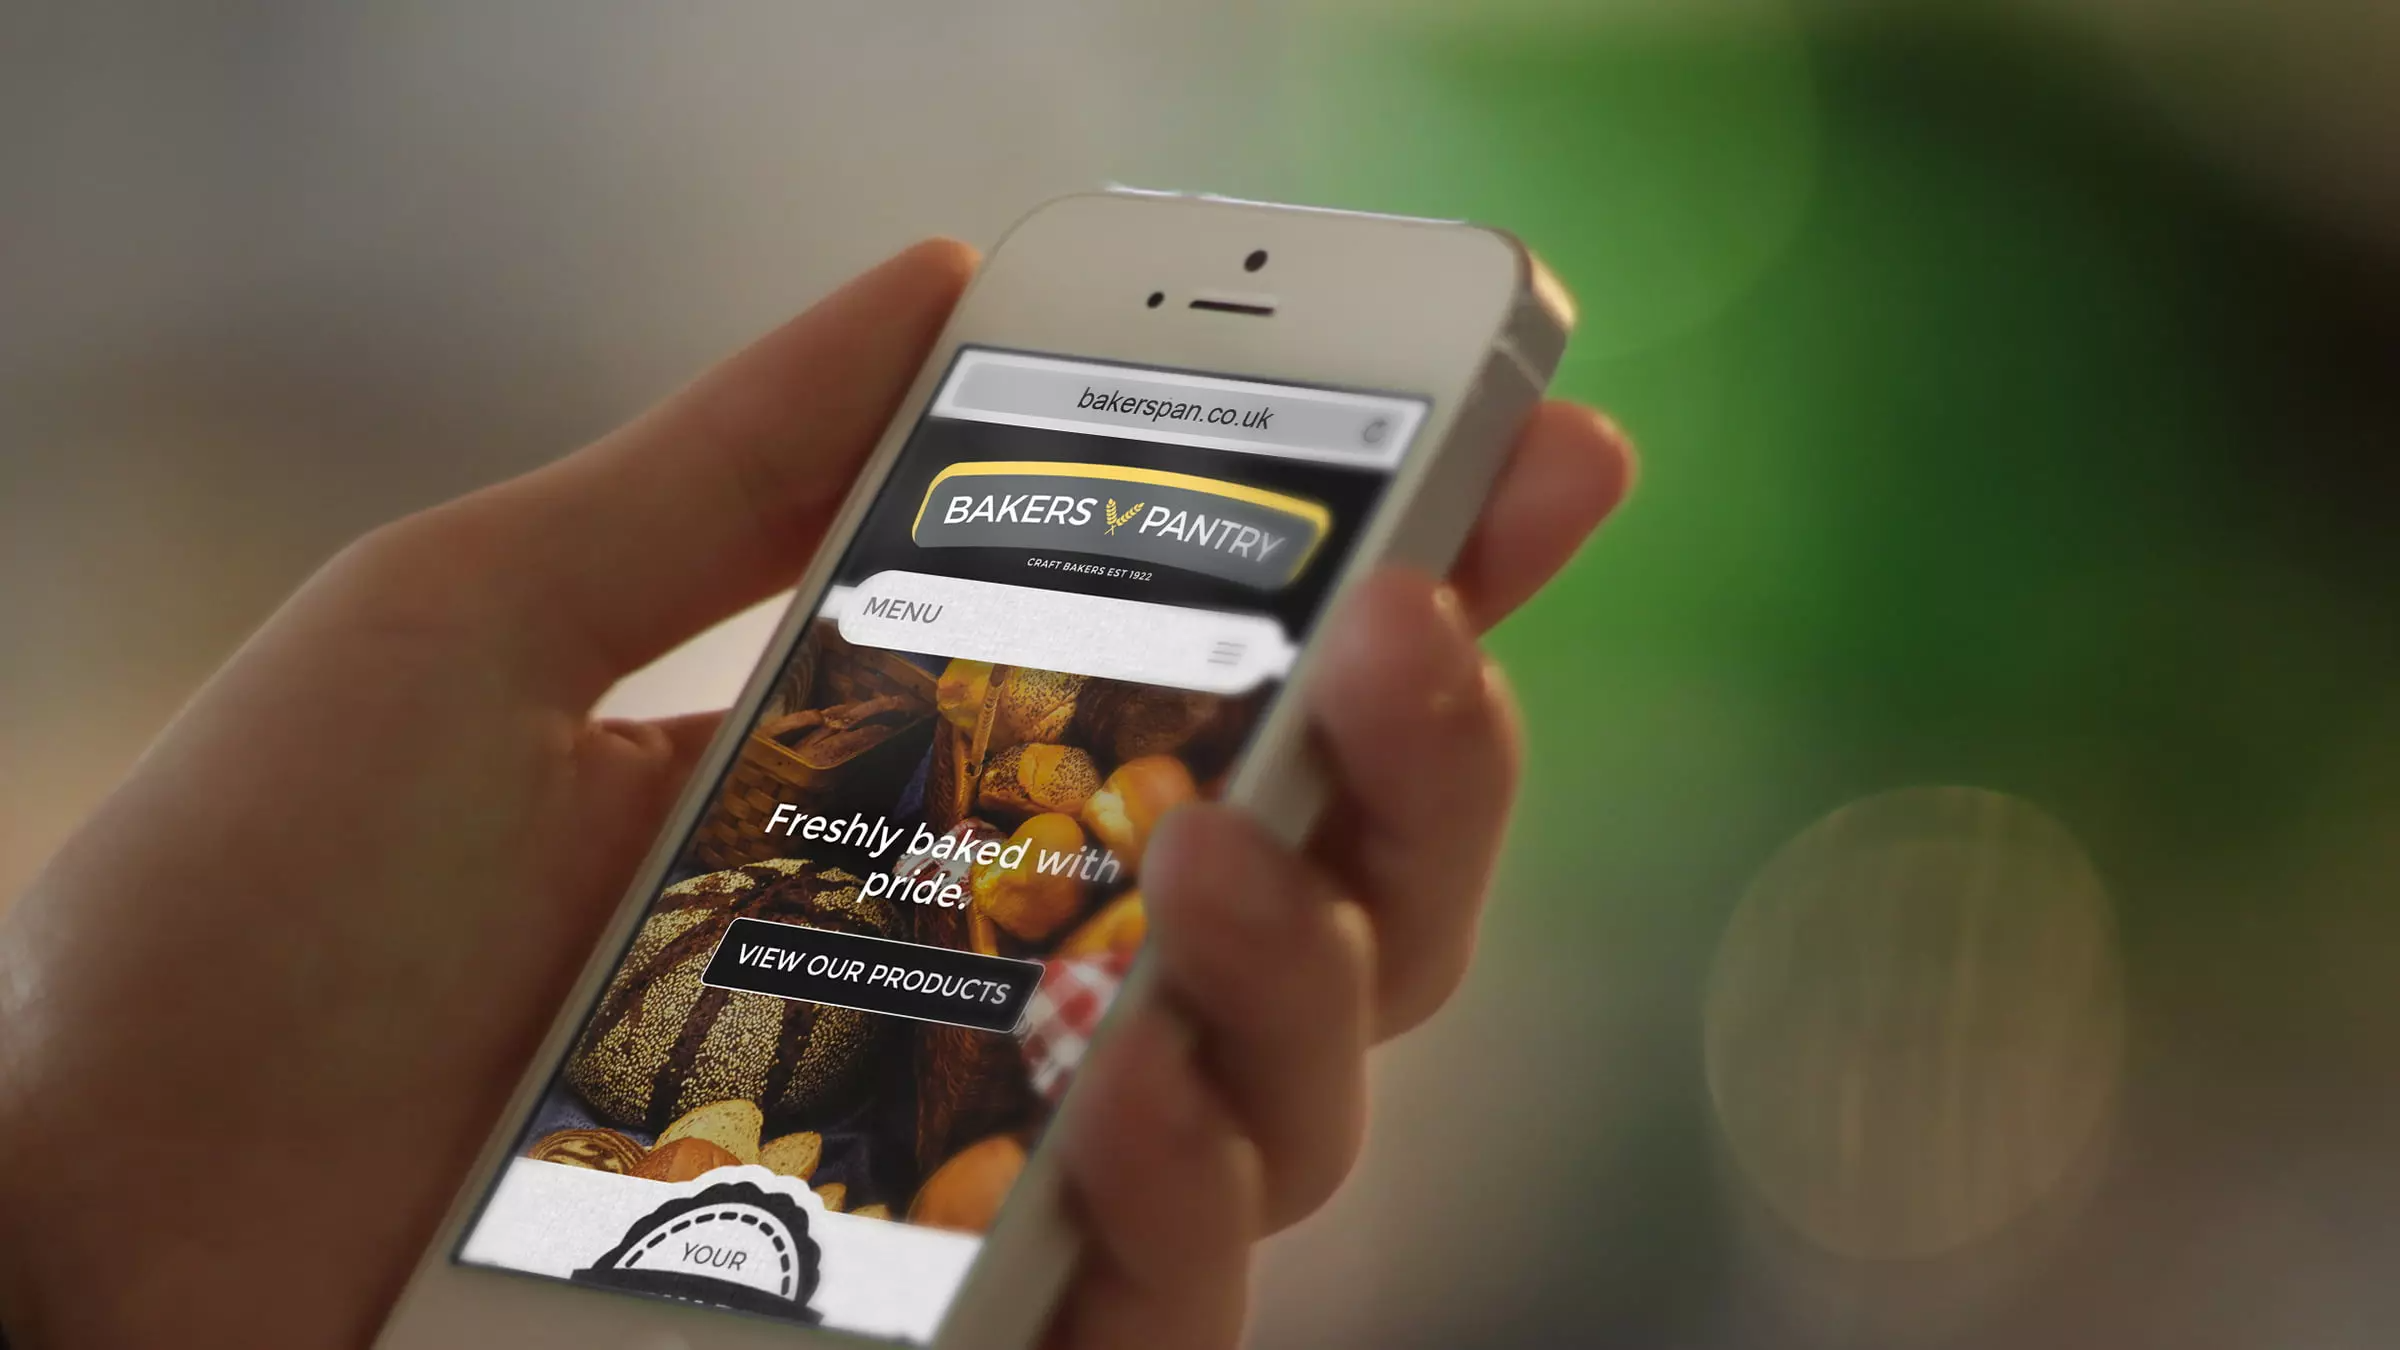 Bakers Pantry website being viewed on mobile device